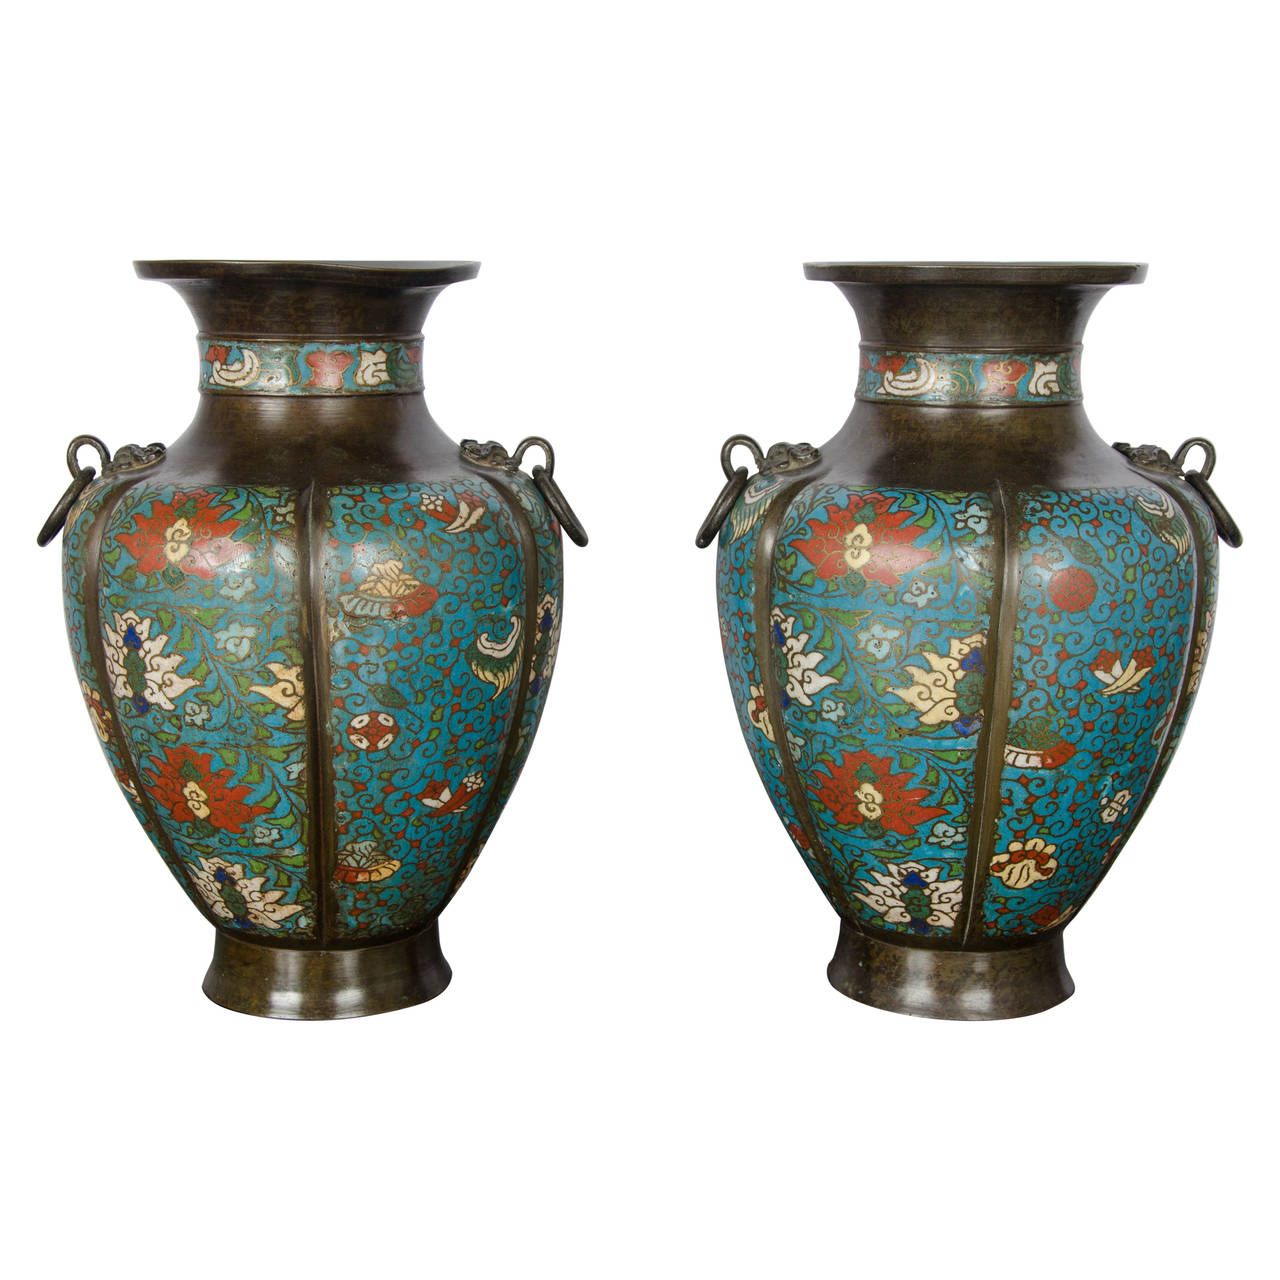 Pair Of 19th Century Chinese Cloisonne Vases